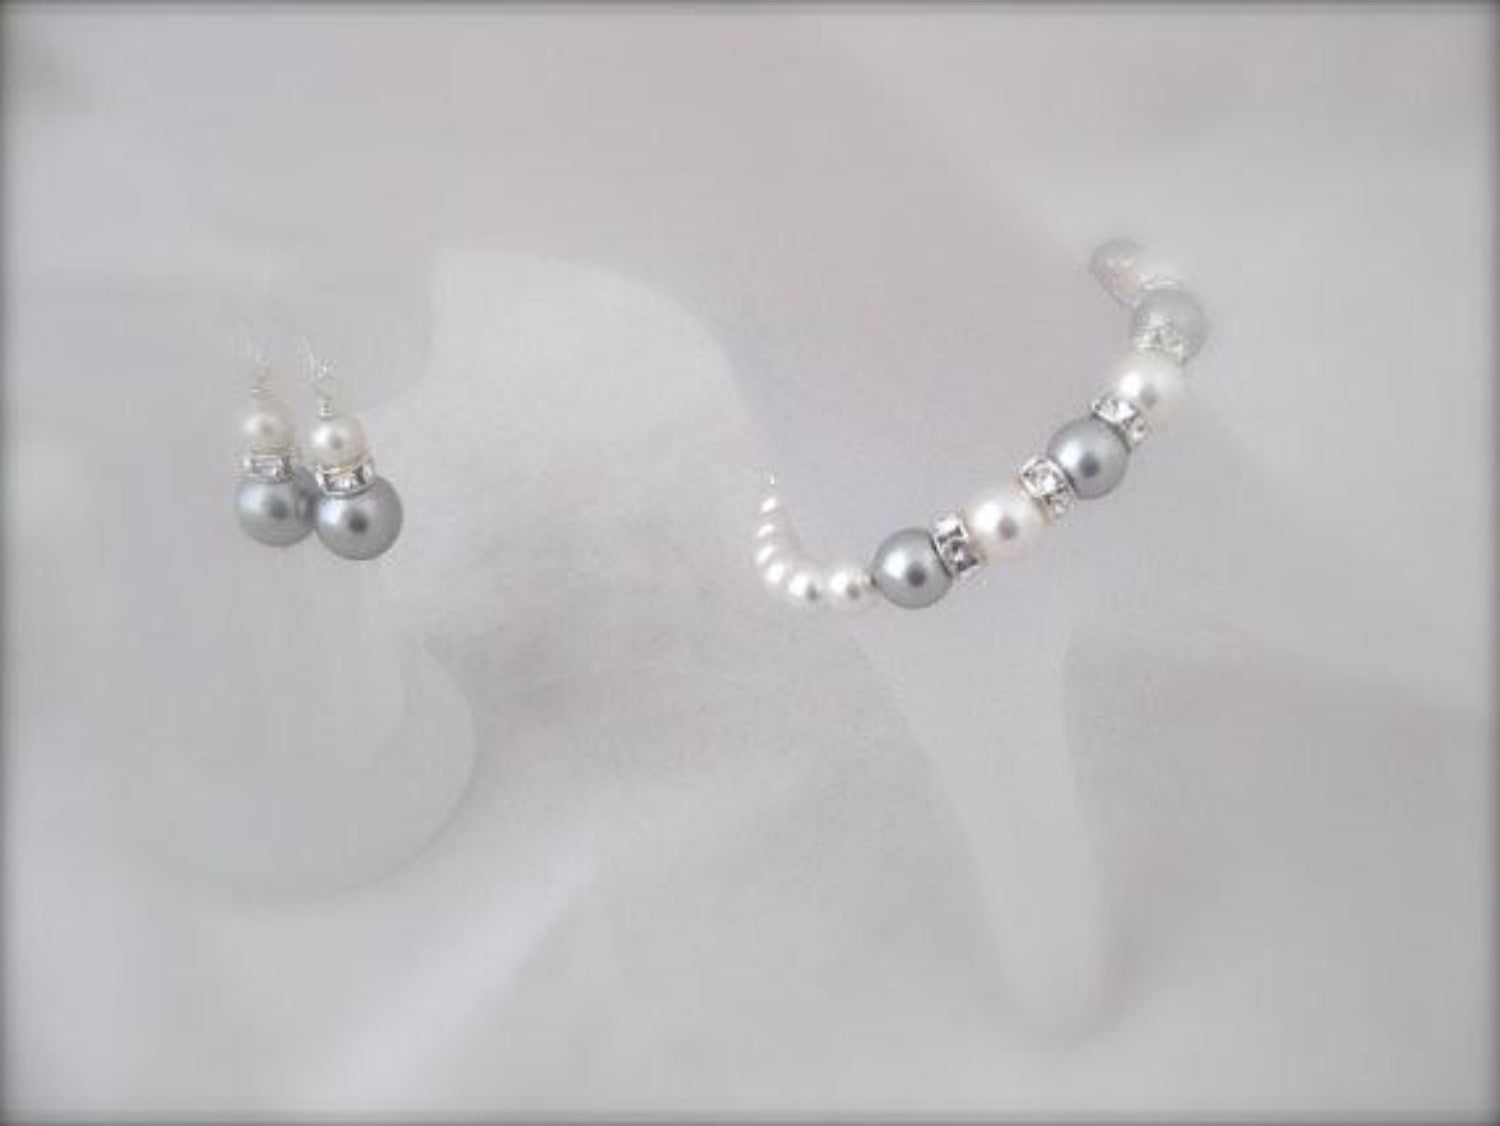 White and grey pearl bracelet and earrings sets for bridesmaids - Clairesbridal